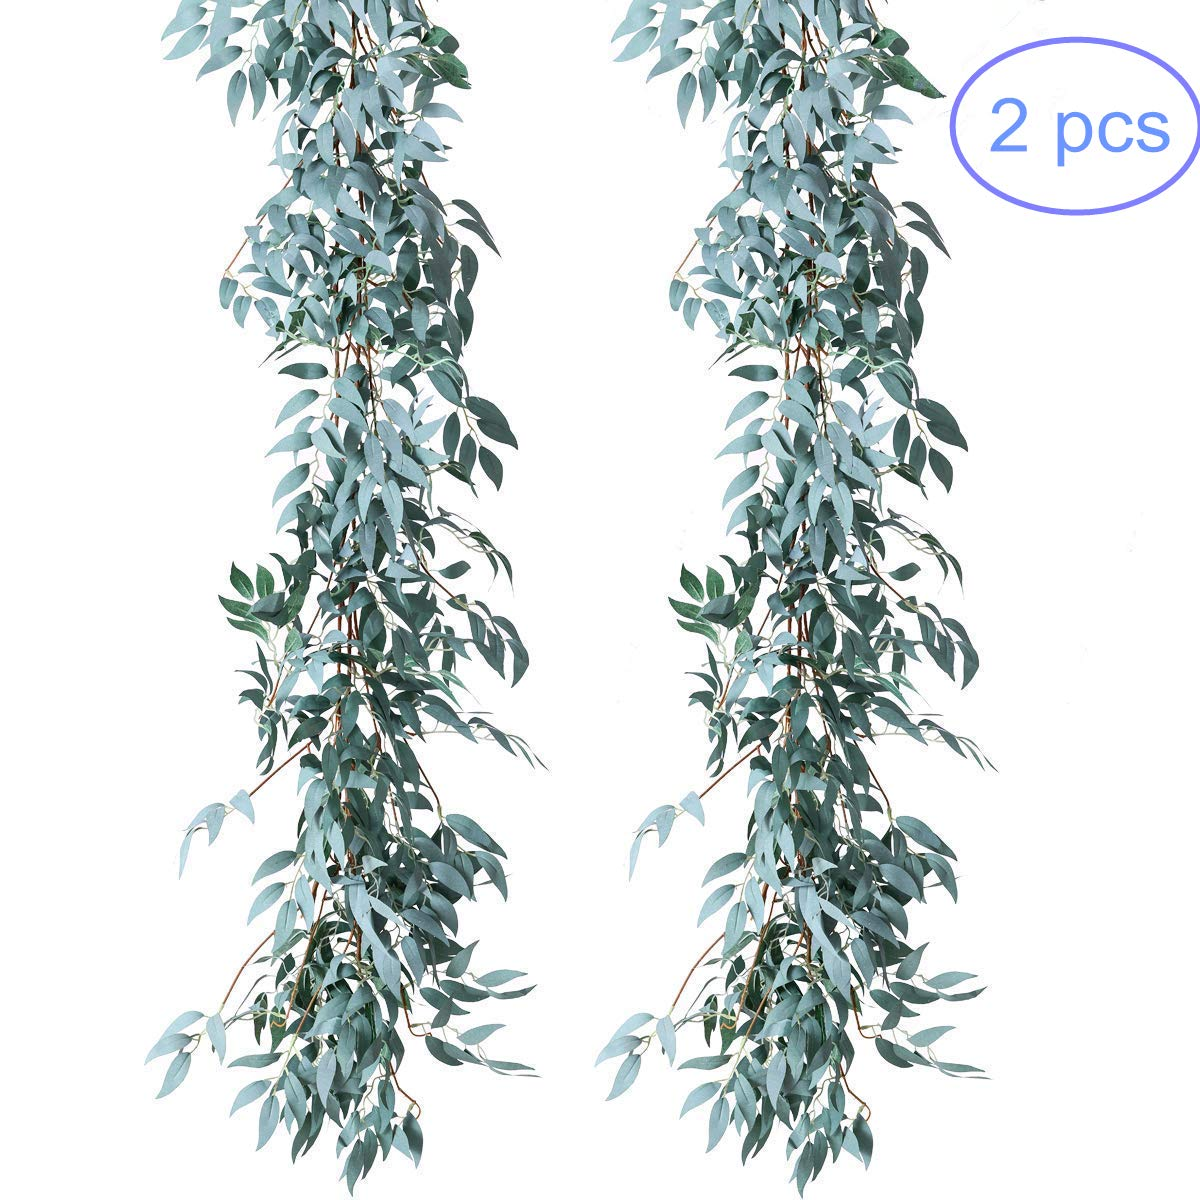 NANSSY 2 Pack Artificial Gray Greenery Garland Faux Silk Willow Leaves Vines Wreath for Wedding Decor, Party, Home Decor, Crowns Wreath (Gray Willow Leaves)